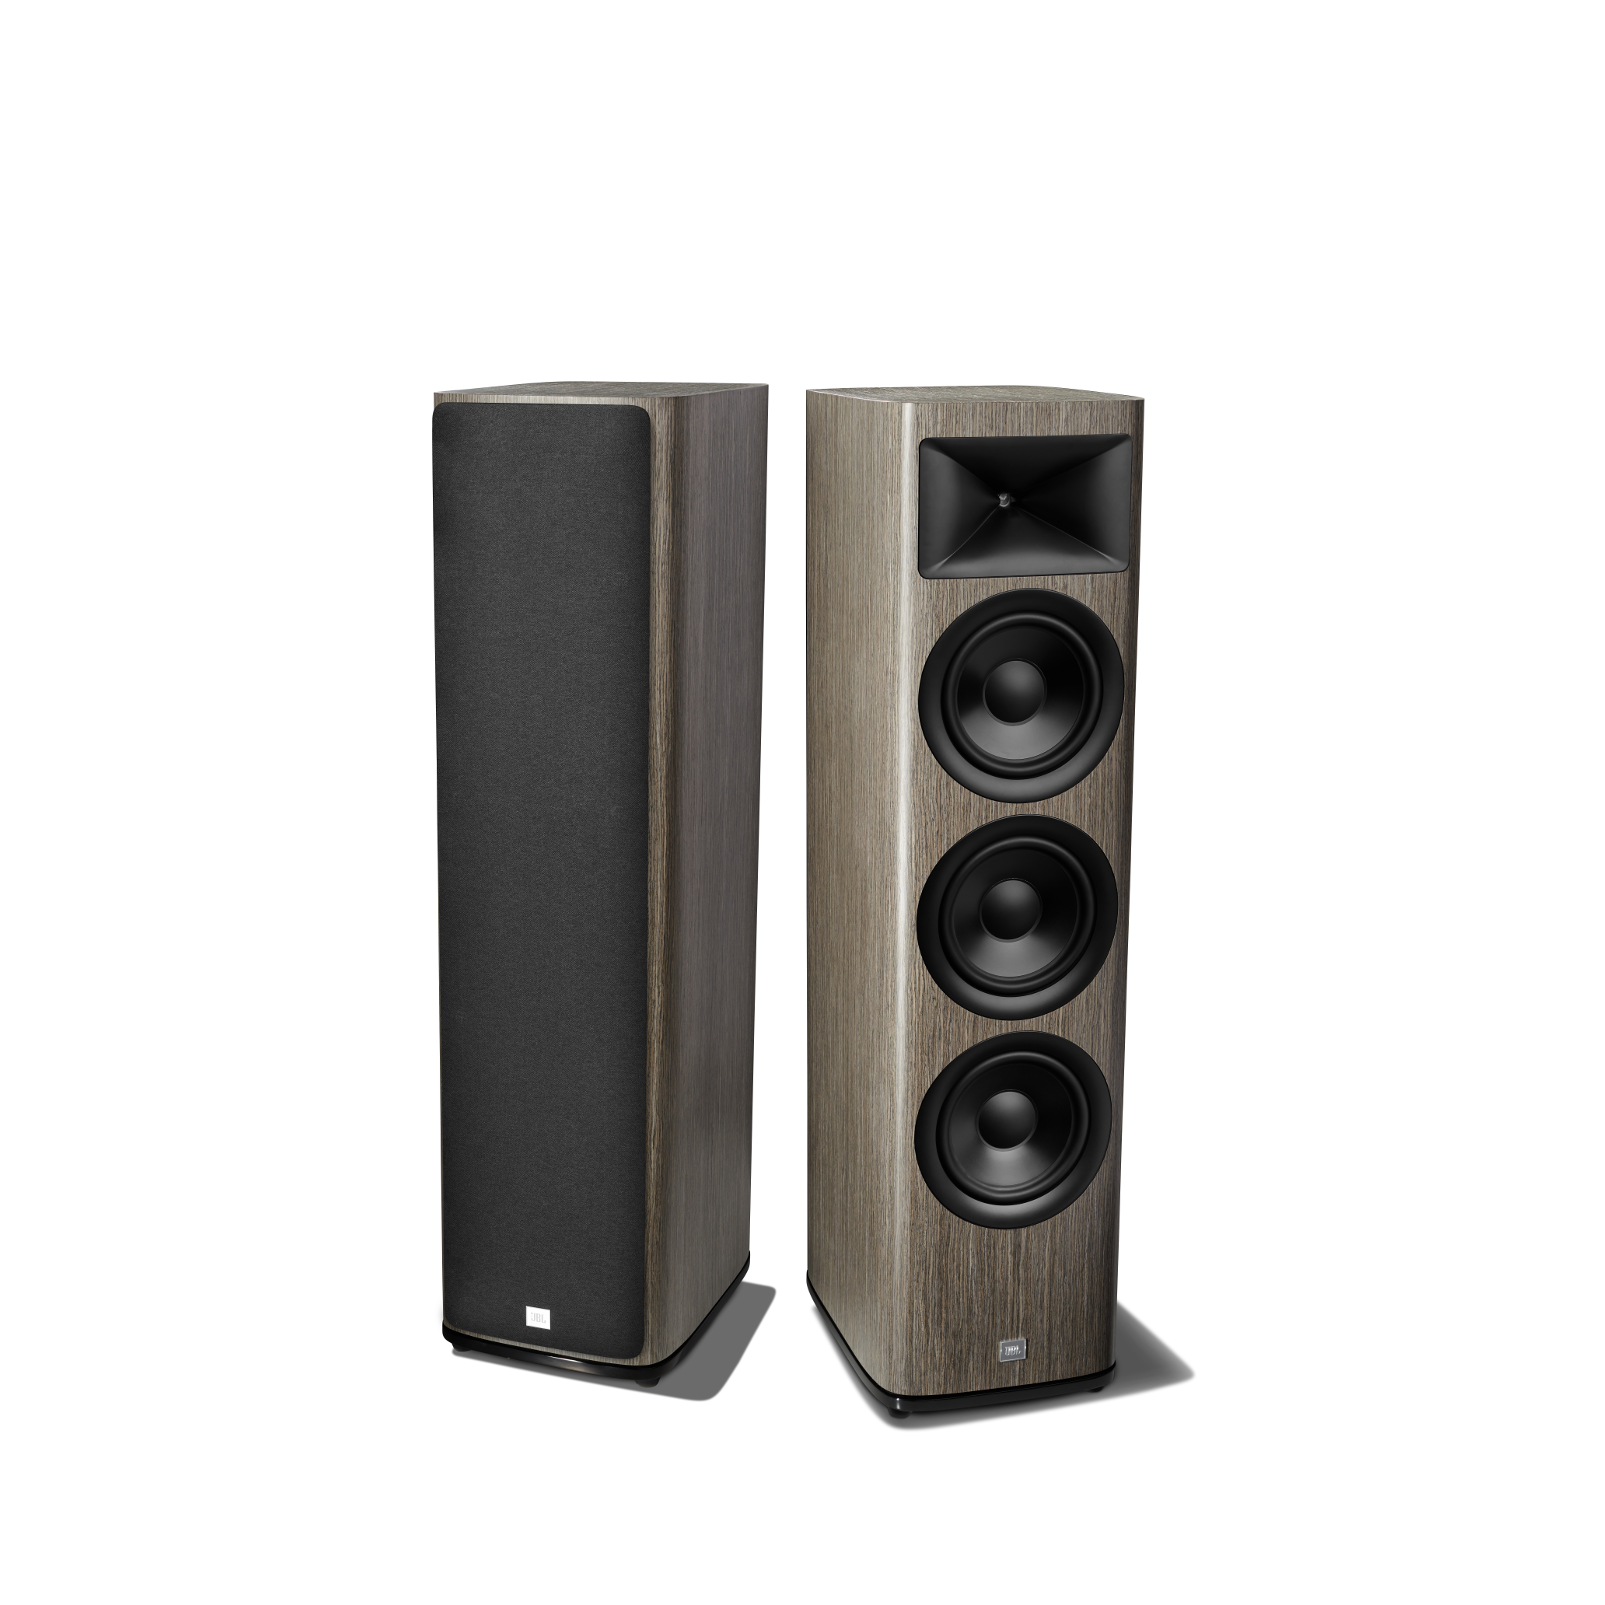 HDI-3800 - Grey Oak - 2 ½-way Triple 8-inch (200mm) Floorstanding Loudspeaker - Detailshot 1